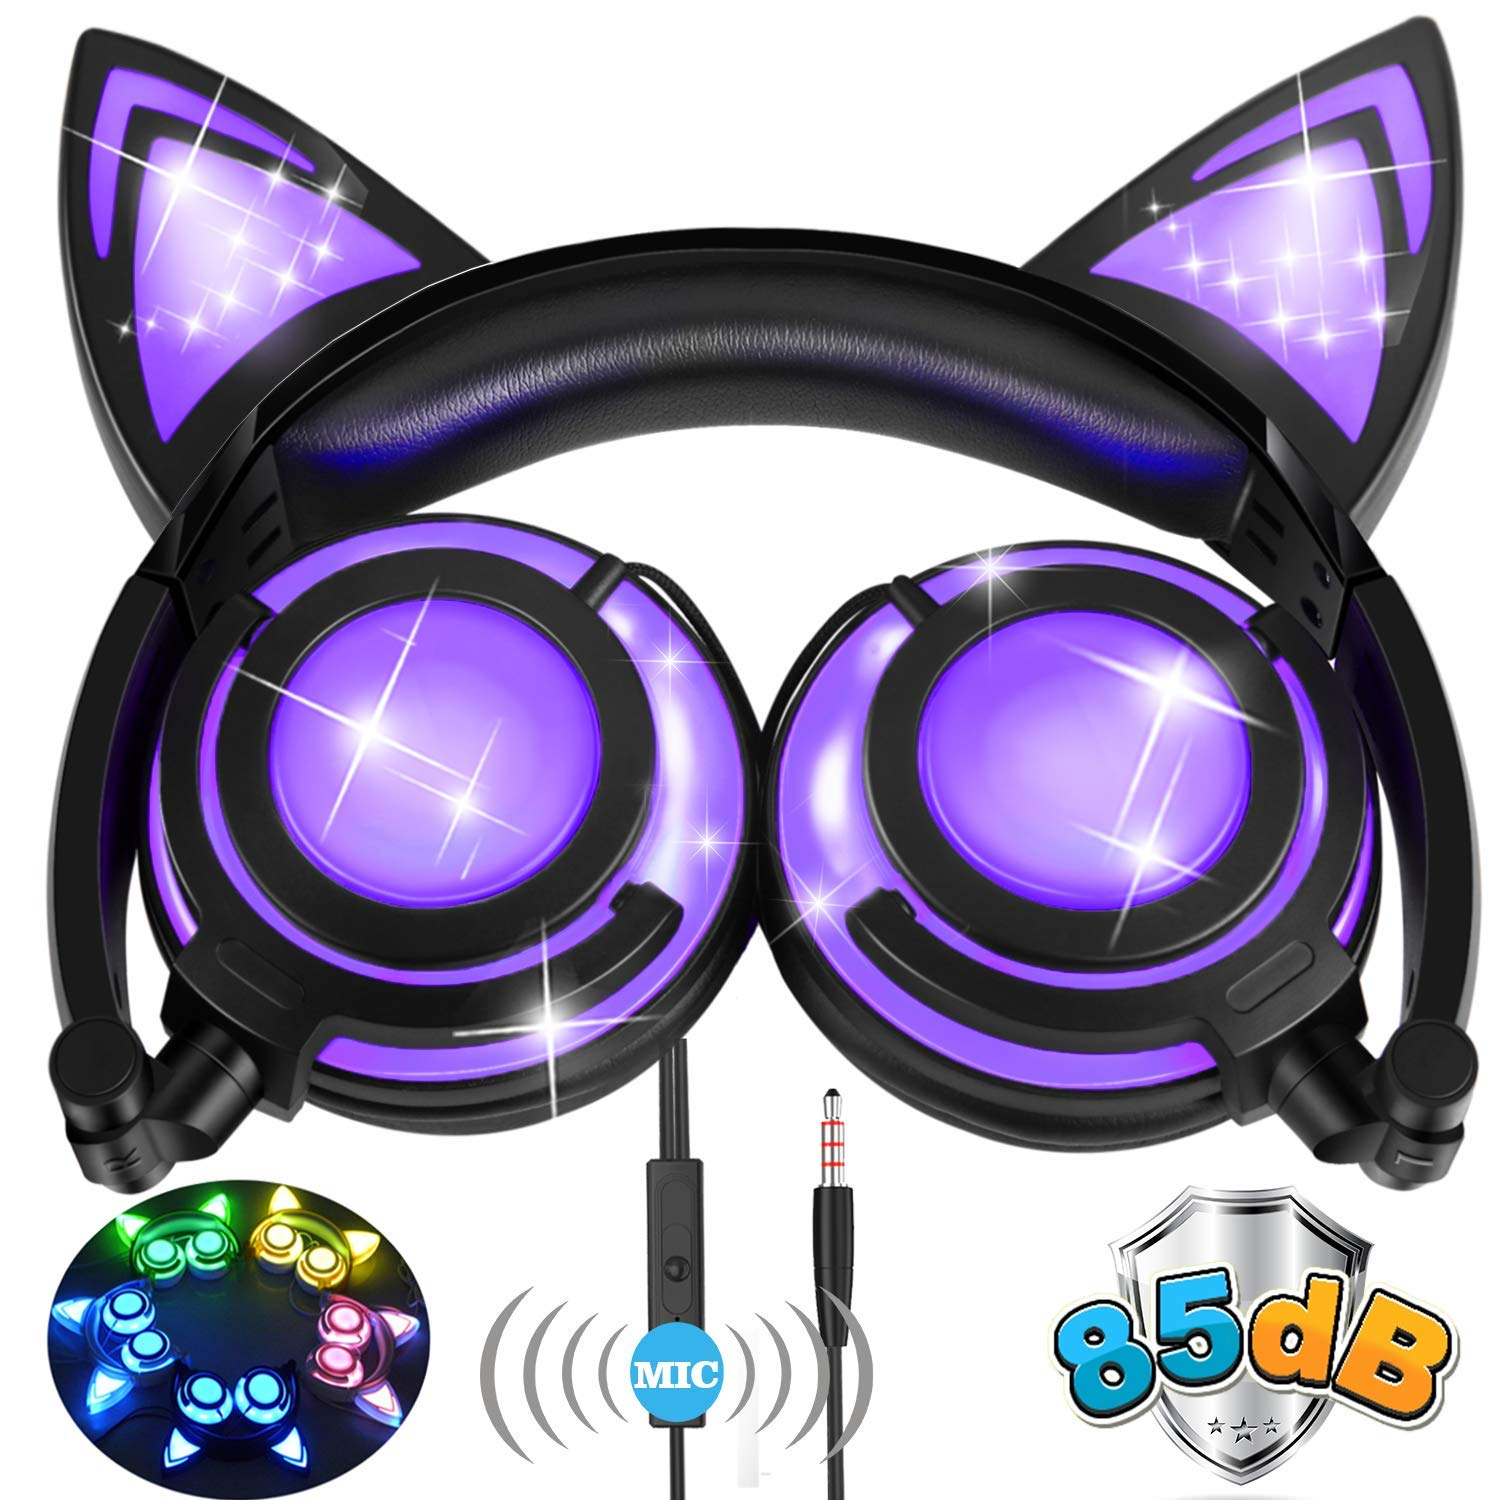 Kids Headphones for Girls Boys Cat Headphones with Mic LED Light 85dB Volume Limited AMENON Foldable Over/On Ear Headsets for Girls Boys Children Phone Tablet School Travel Outdoor Musical Device